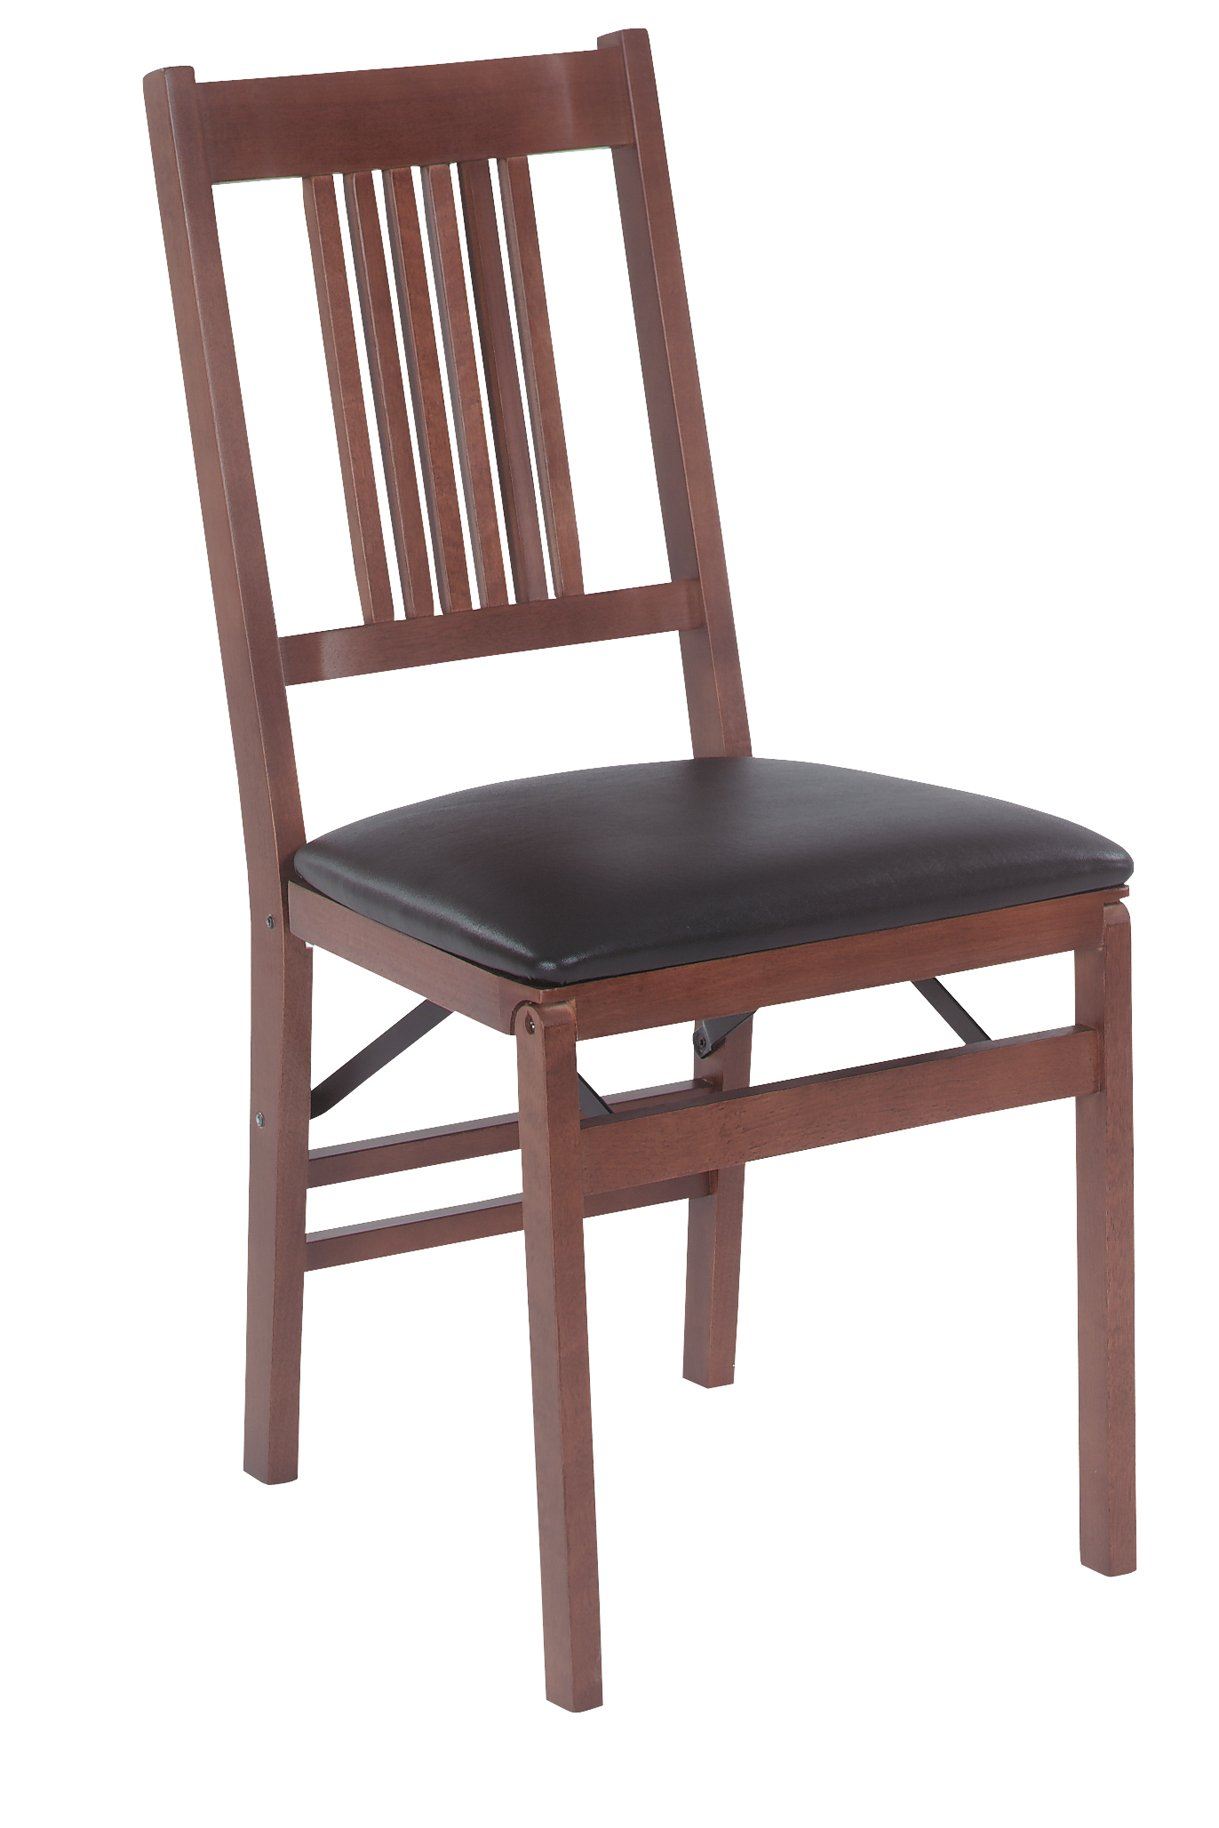 Best Rated In Folding Chairs Amp Helpful Customer Reviews